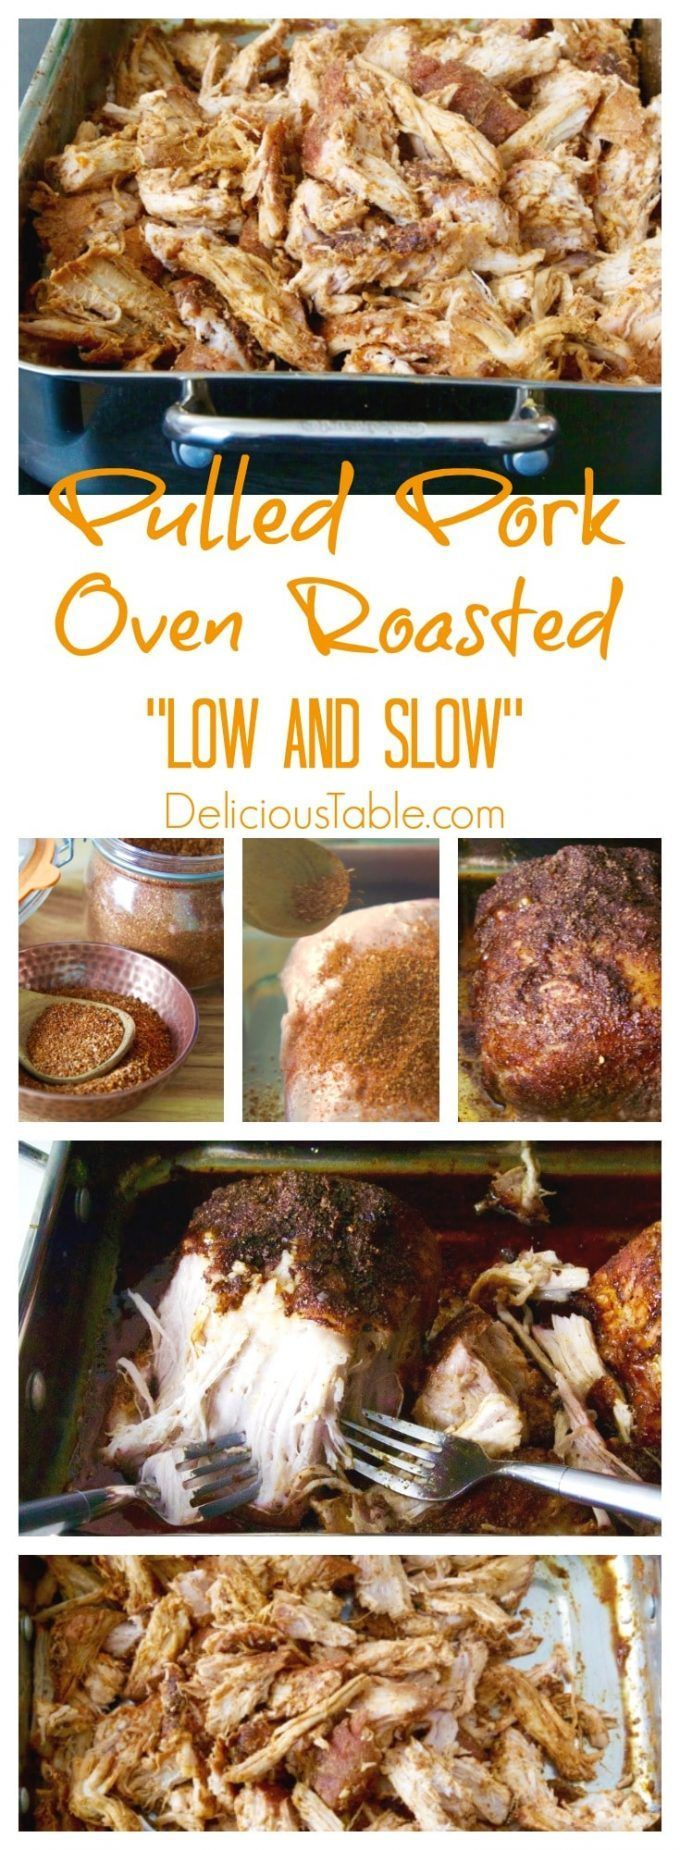 Easy Pulled Pork OVEN ROASTED is moist, slightly crispy, and super savory! Try my Homemade BBQ Dry Rub, with the low oven temperature slow roasting secrets. An incredible pulled pork recipe -- you'll want to try this one right now! #pulledpork #porkrecipes #pulledporkrecipes via @www.pinterest.com/delicioustable